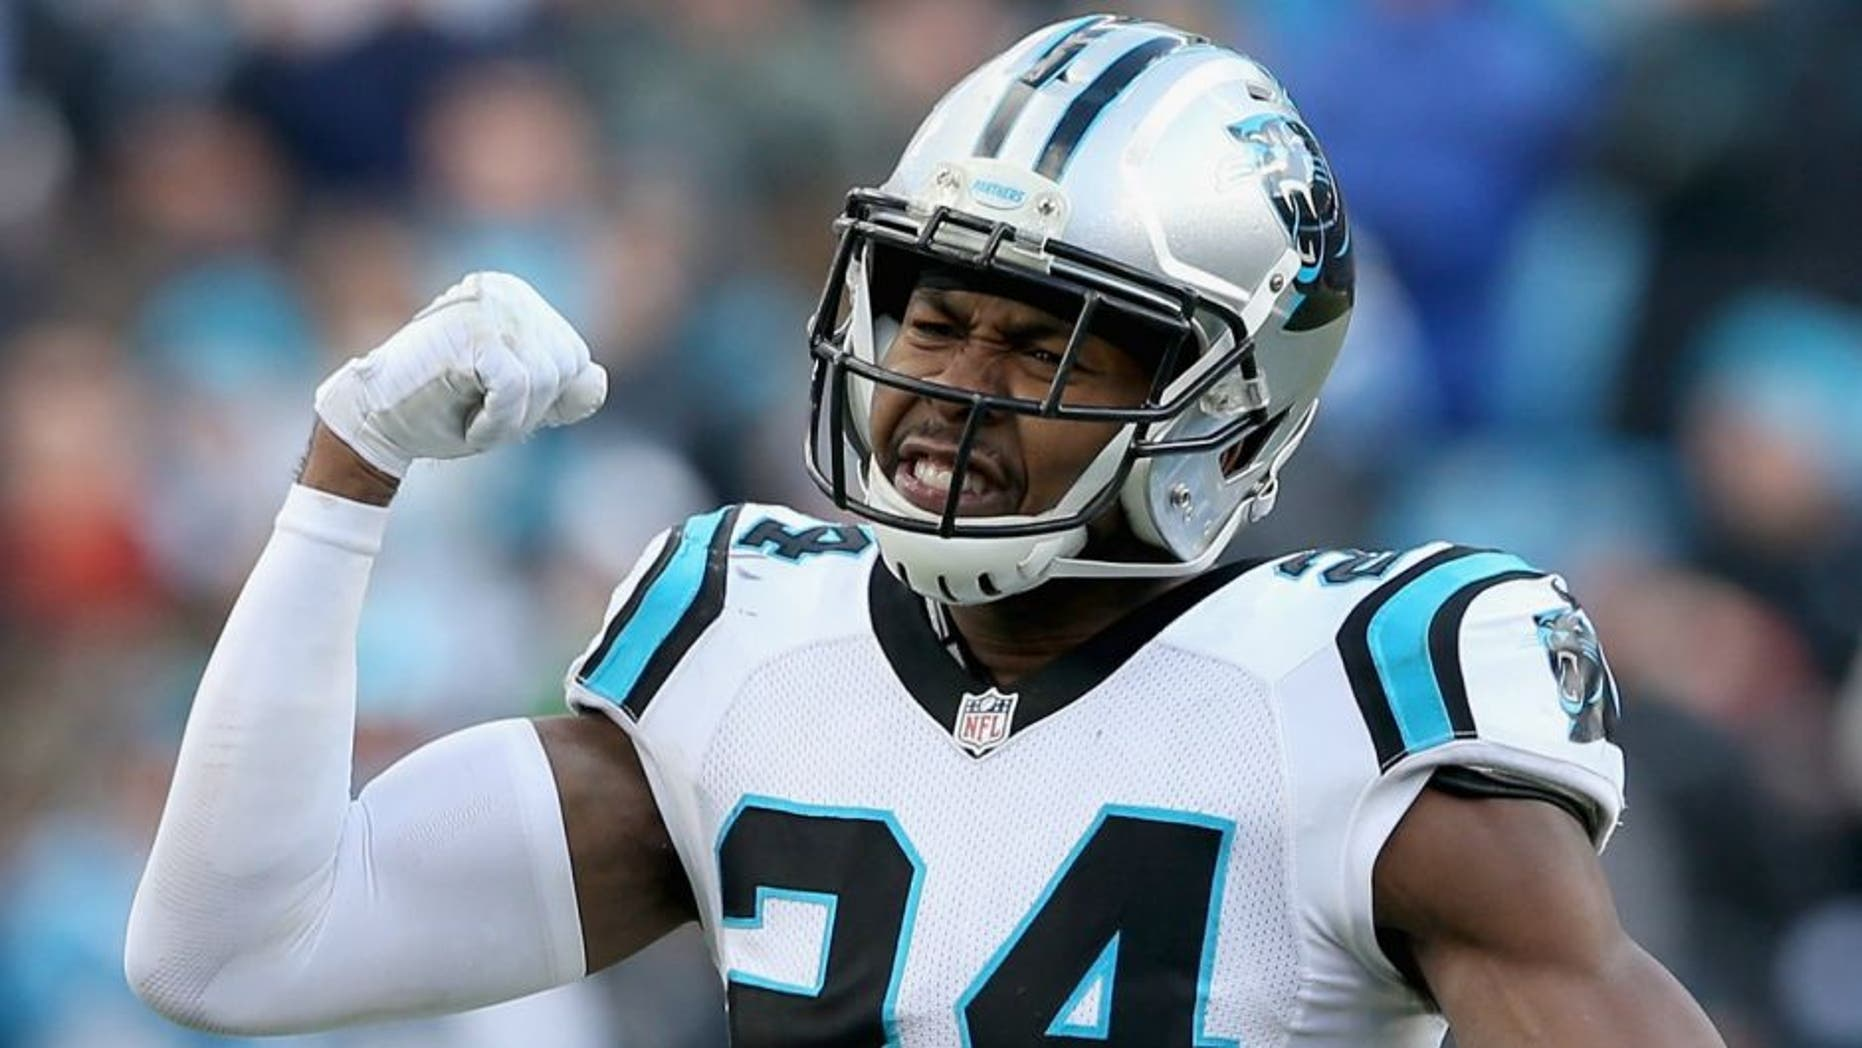 CHARLOTTE, NC - JANUARY 17: Josh Norman #24 of the Carolina Panthers reacts after a play against the Seattle Seahawks in the 3rd quarter during the NFC Divisional Playoff Game at Bank of America Stadium on January 17, 2016 in Charlotte, North Carolina. (Photo by Streeter Lecka/Getty Images)